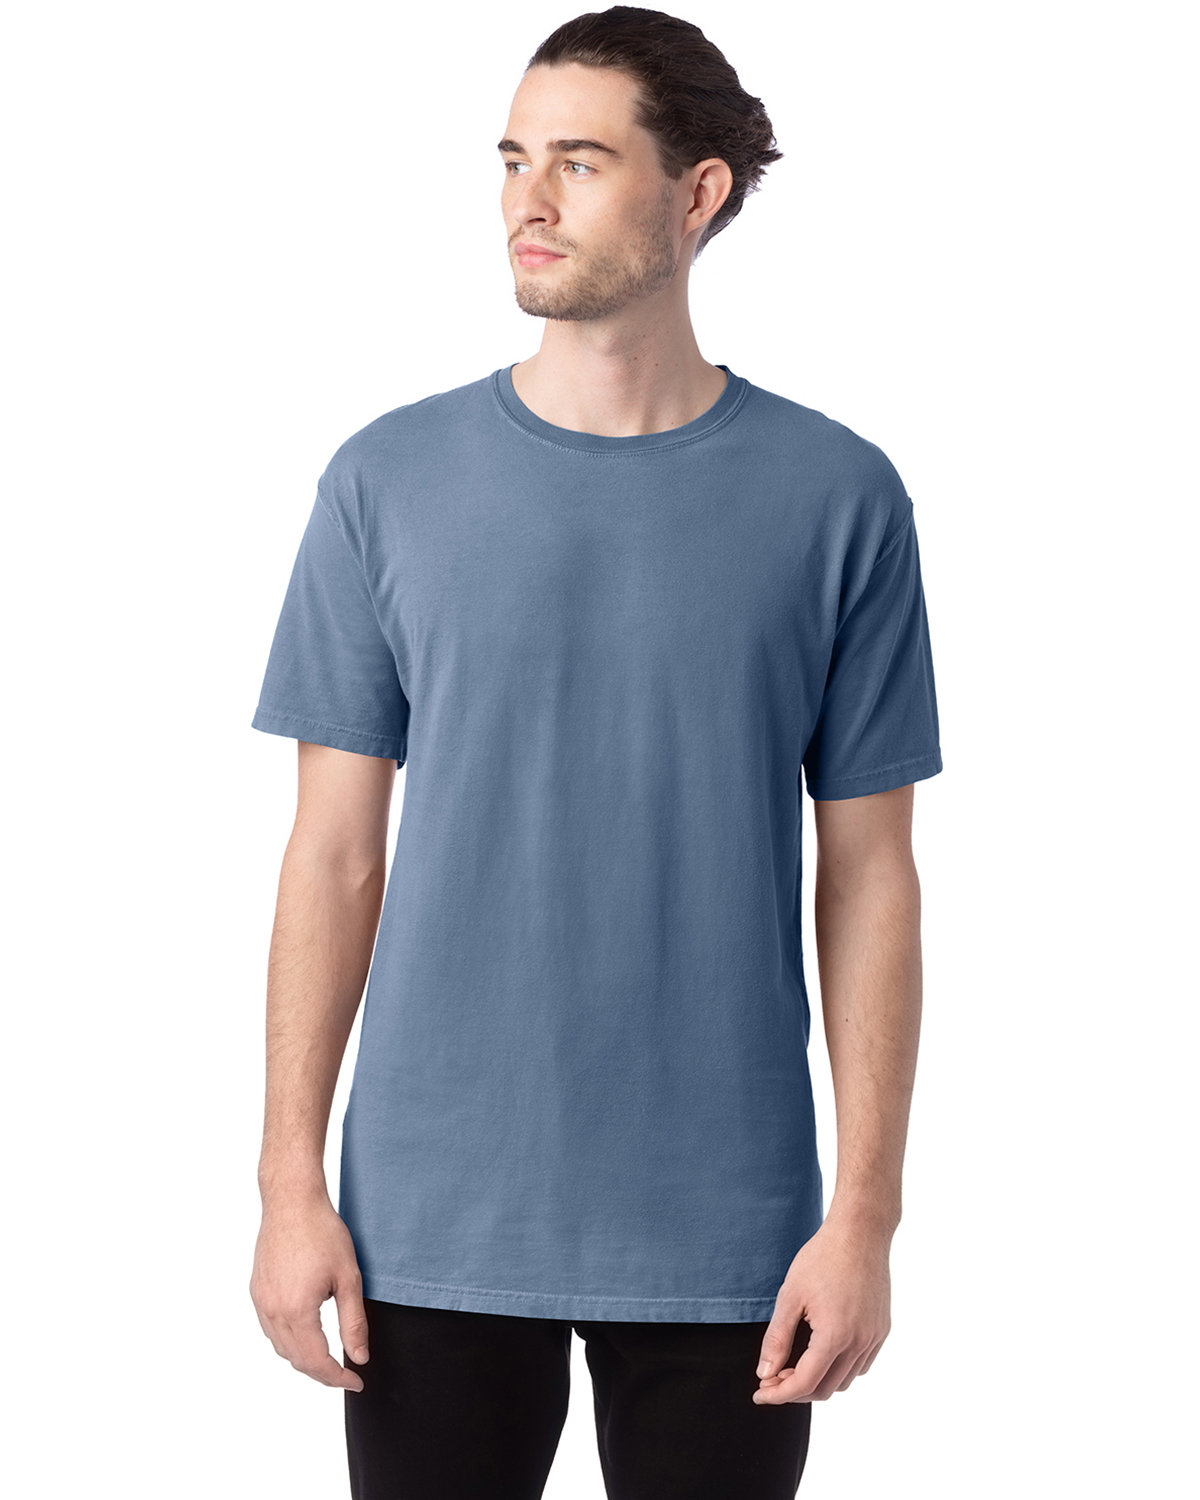 ComfortWash by Hanes Men's 5.5 oz., 100% Ringspun Cotton Garment-Dyed T-Shirt SALTWATER